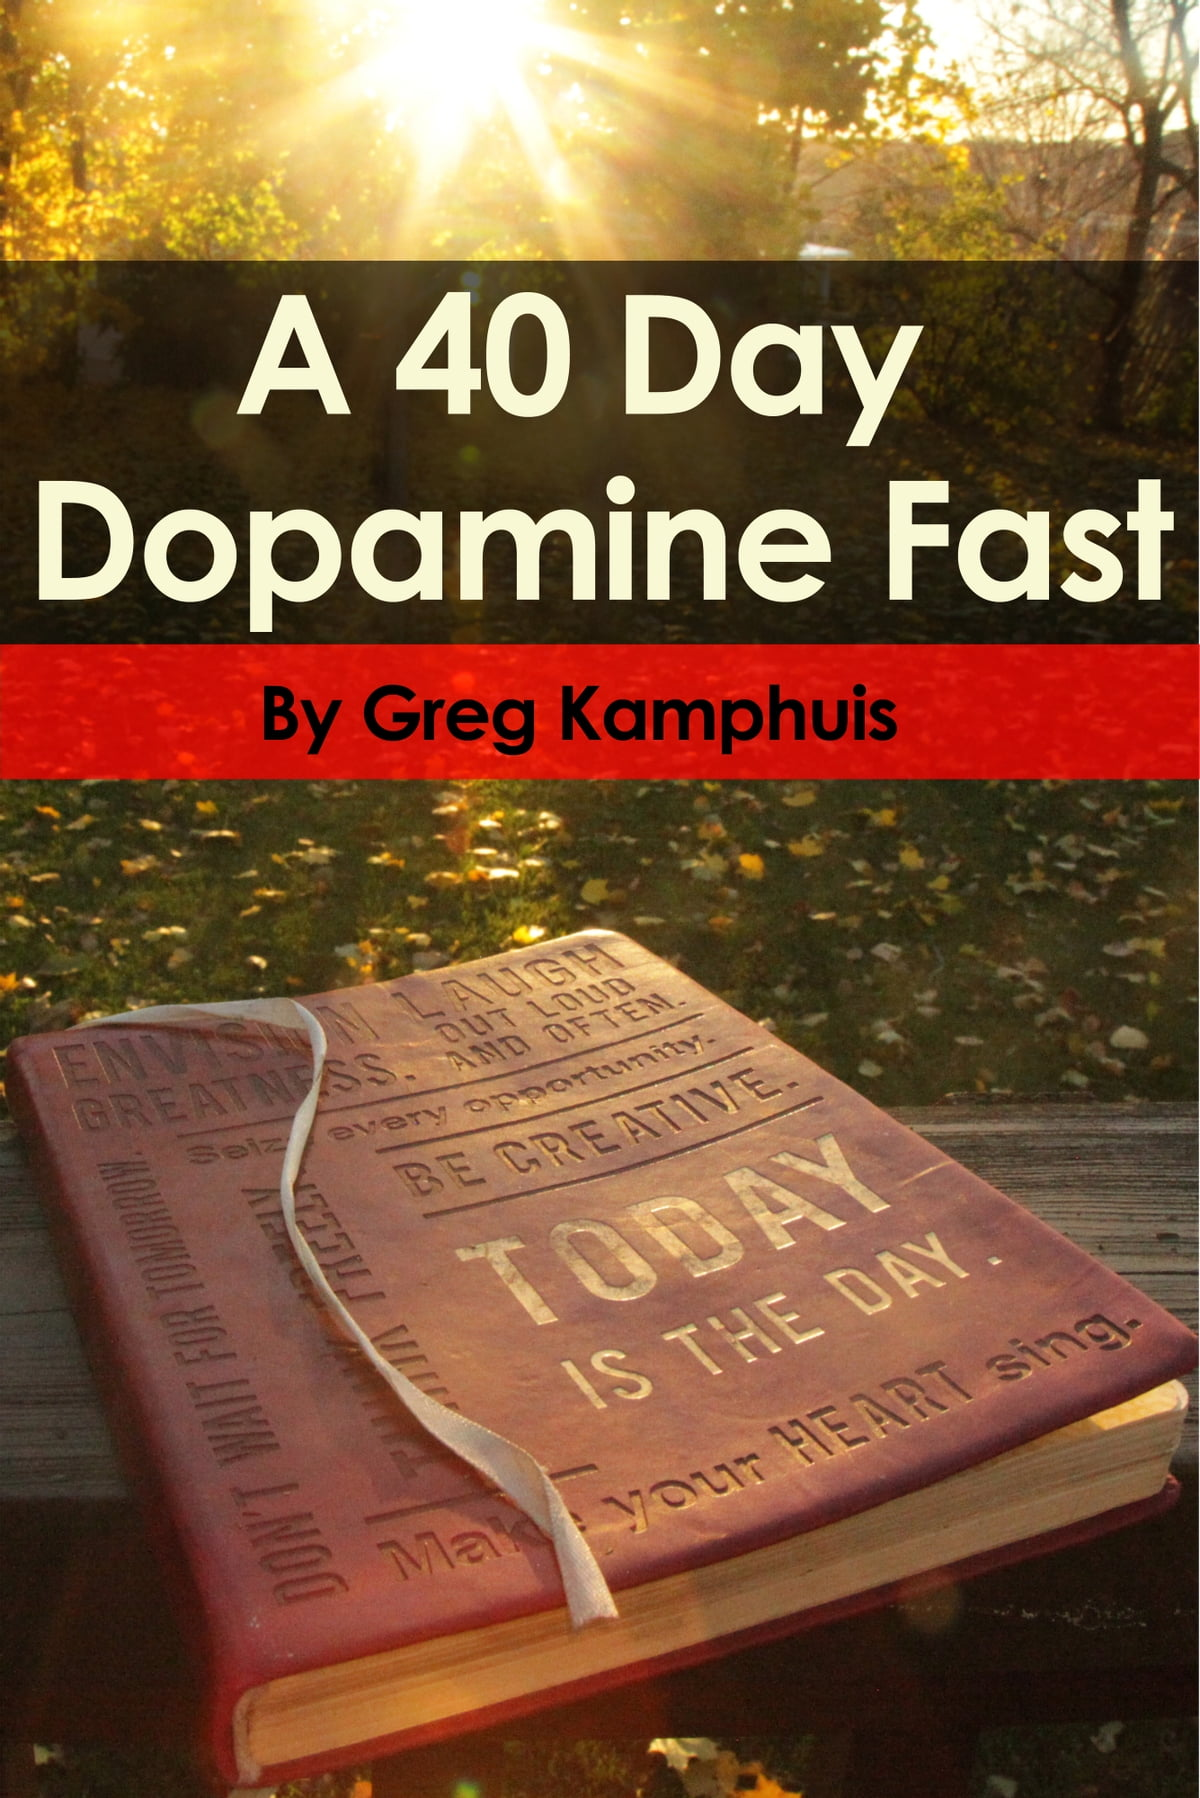 The 40 Day Dopamine Fast eBook by Greg Kamphuis